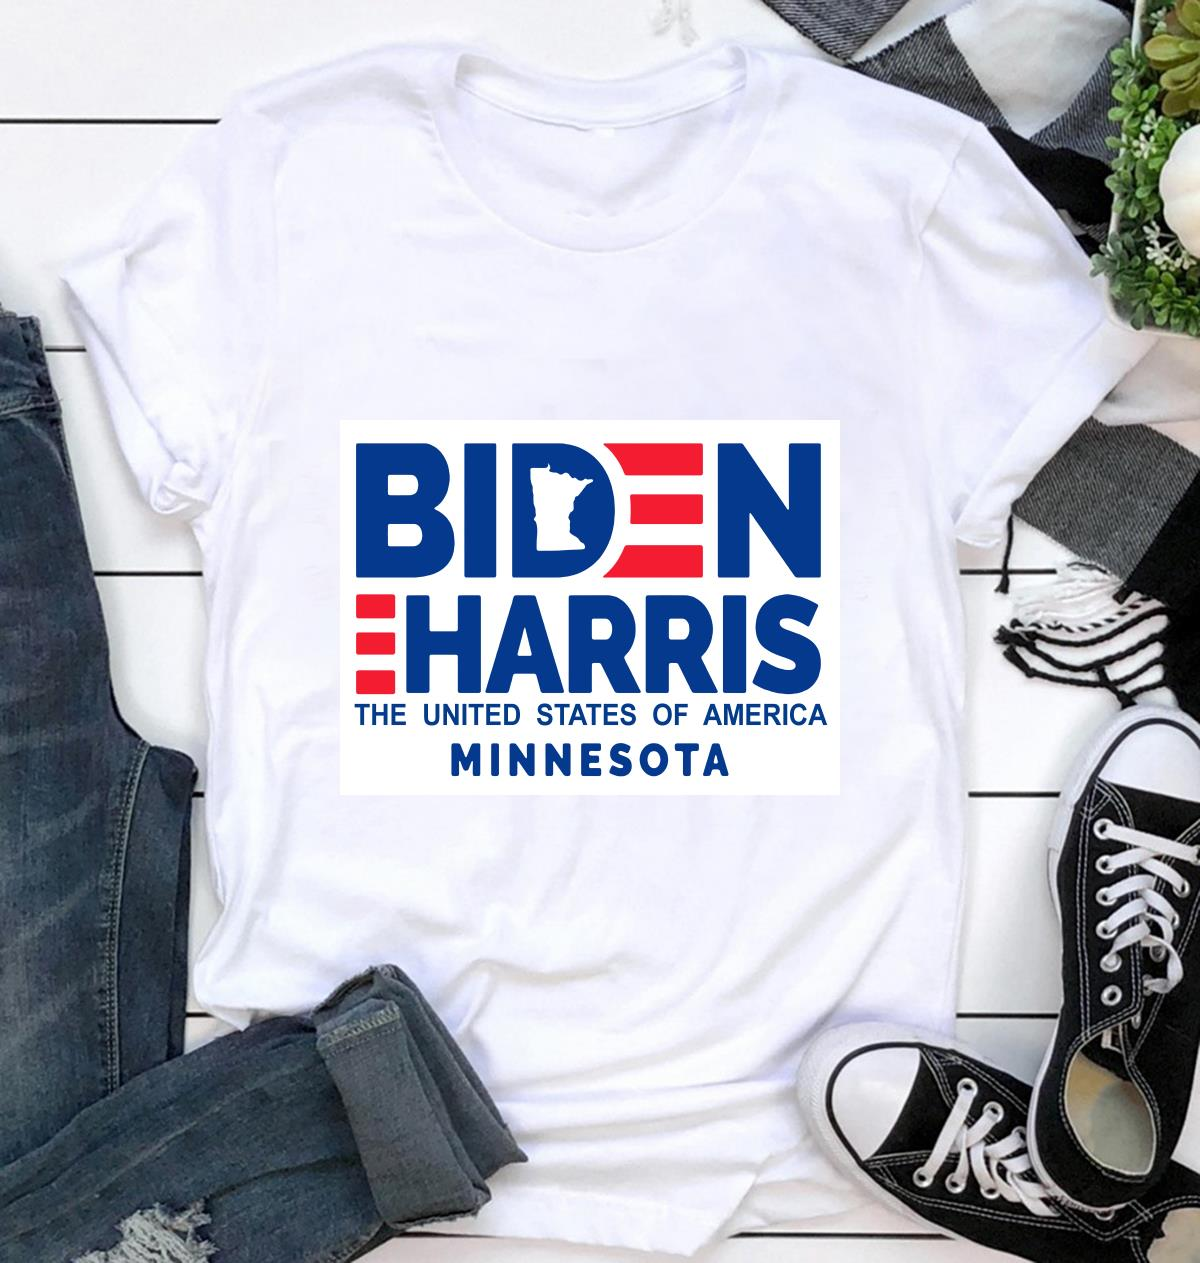 Minnesota for Biden Harris 2020 yard side ca